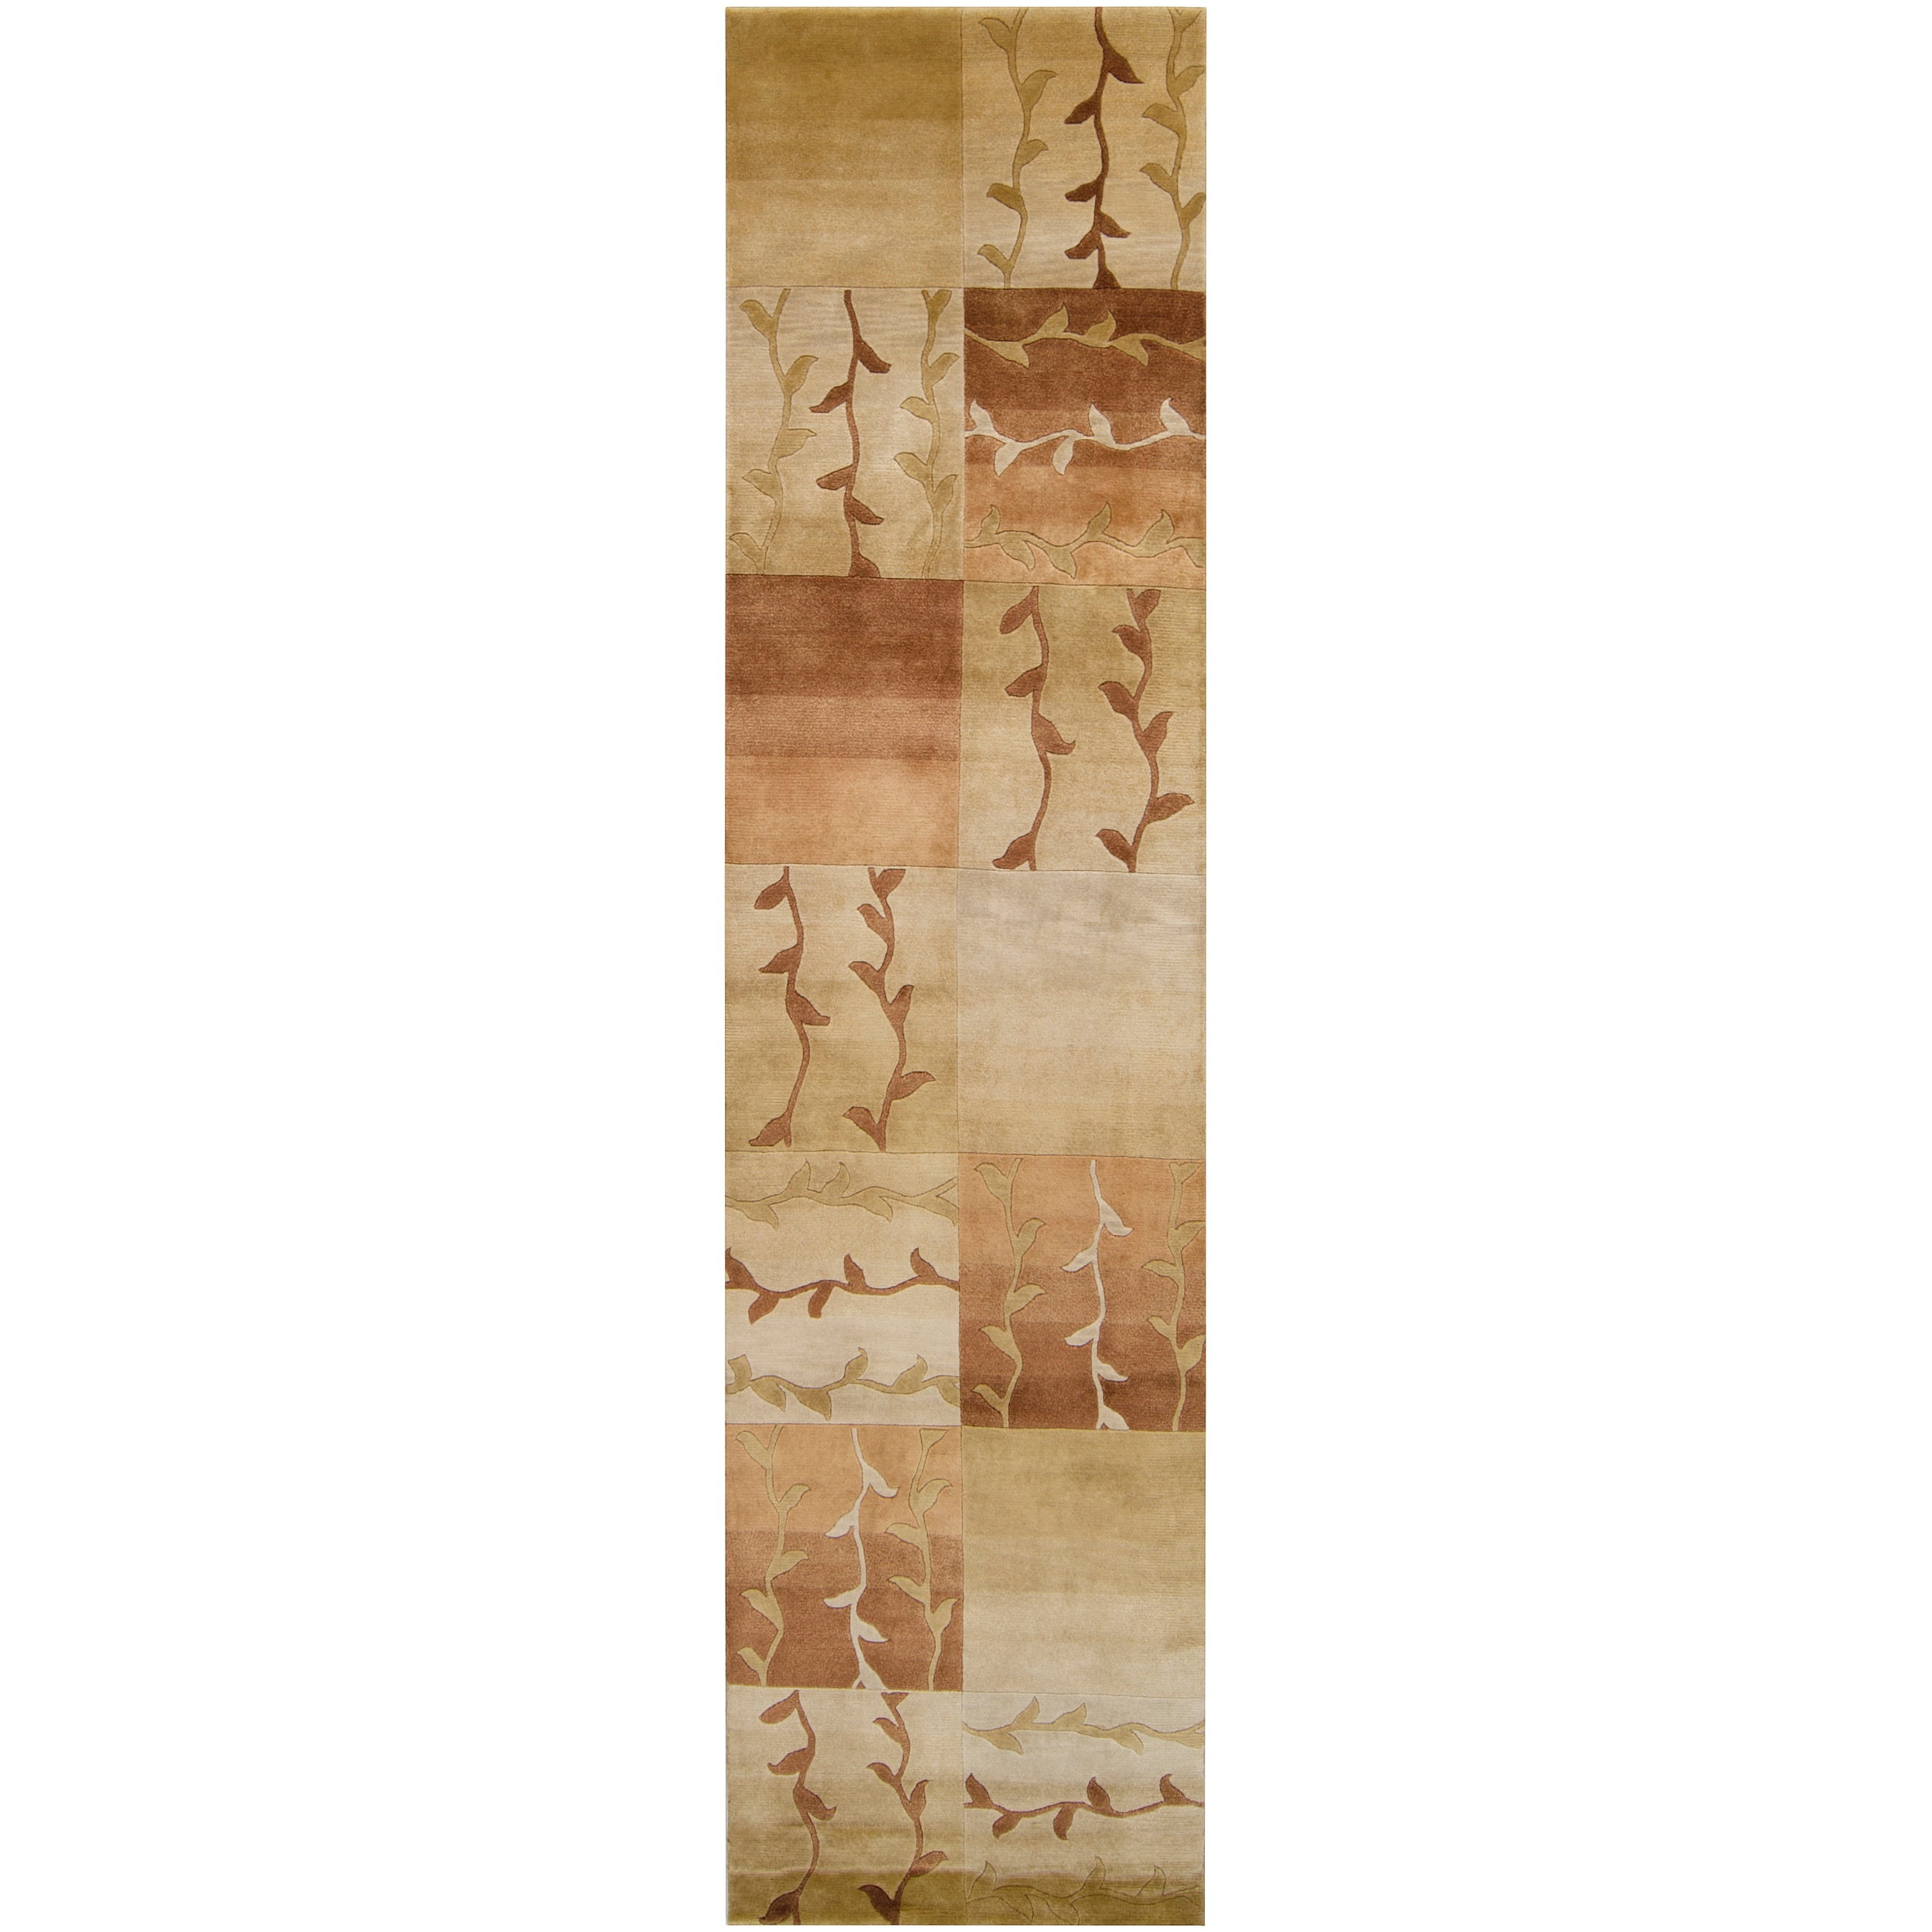 """Hand-Knotted Multicolored Patchwork La Crosse Semi-Worsted New Zealand Wool Area Rug - 2'6"""" x 10' Runner/Surplus"""